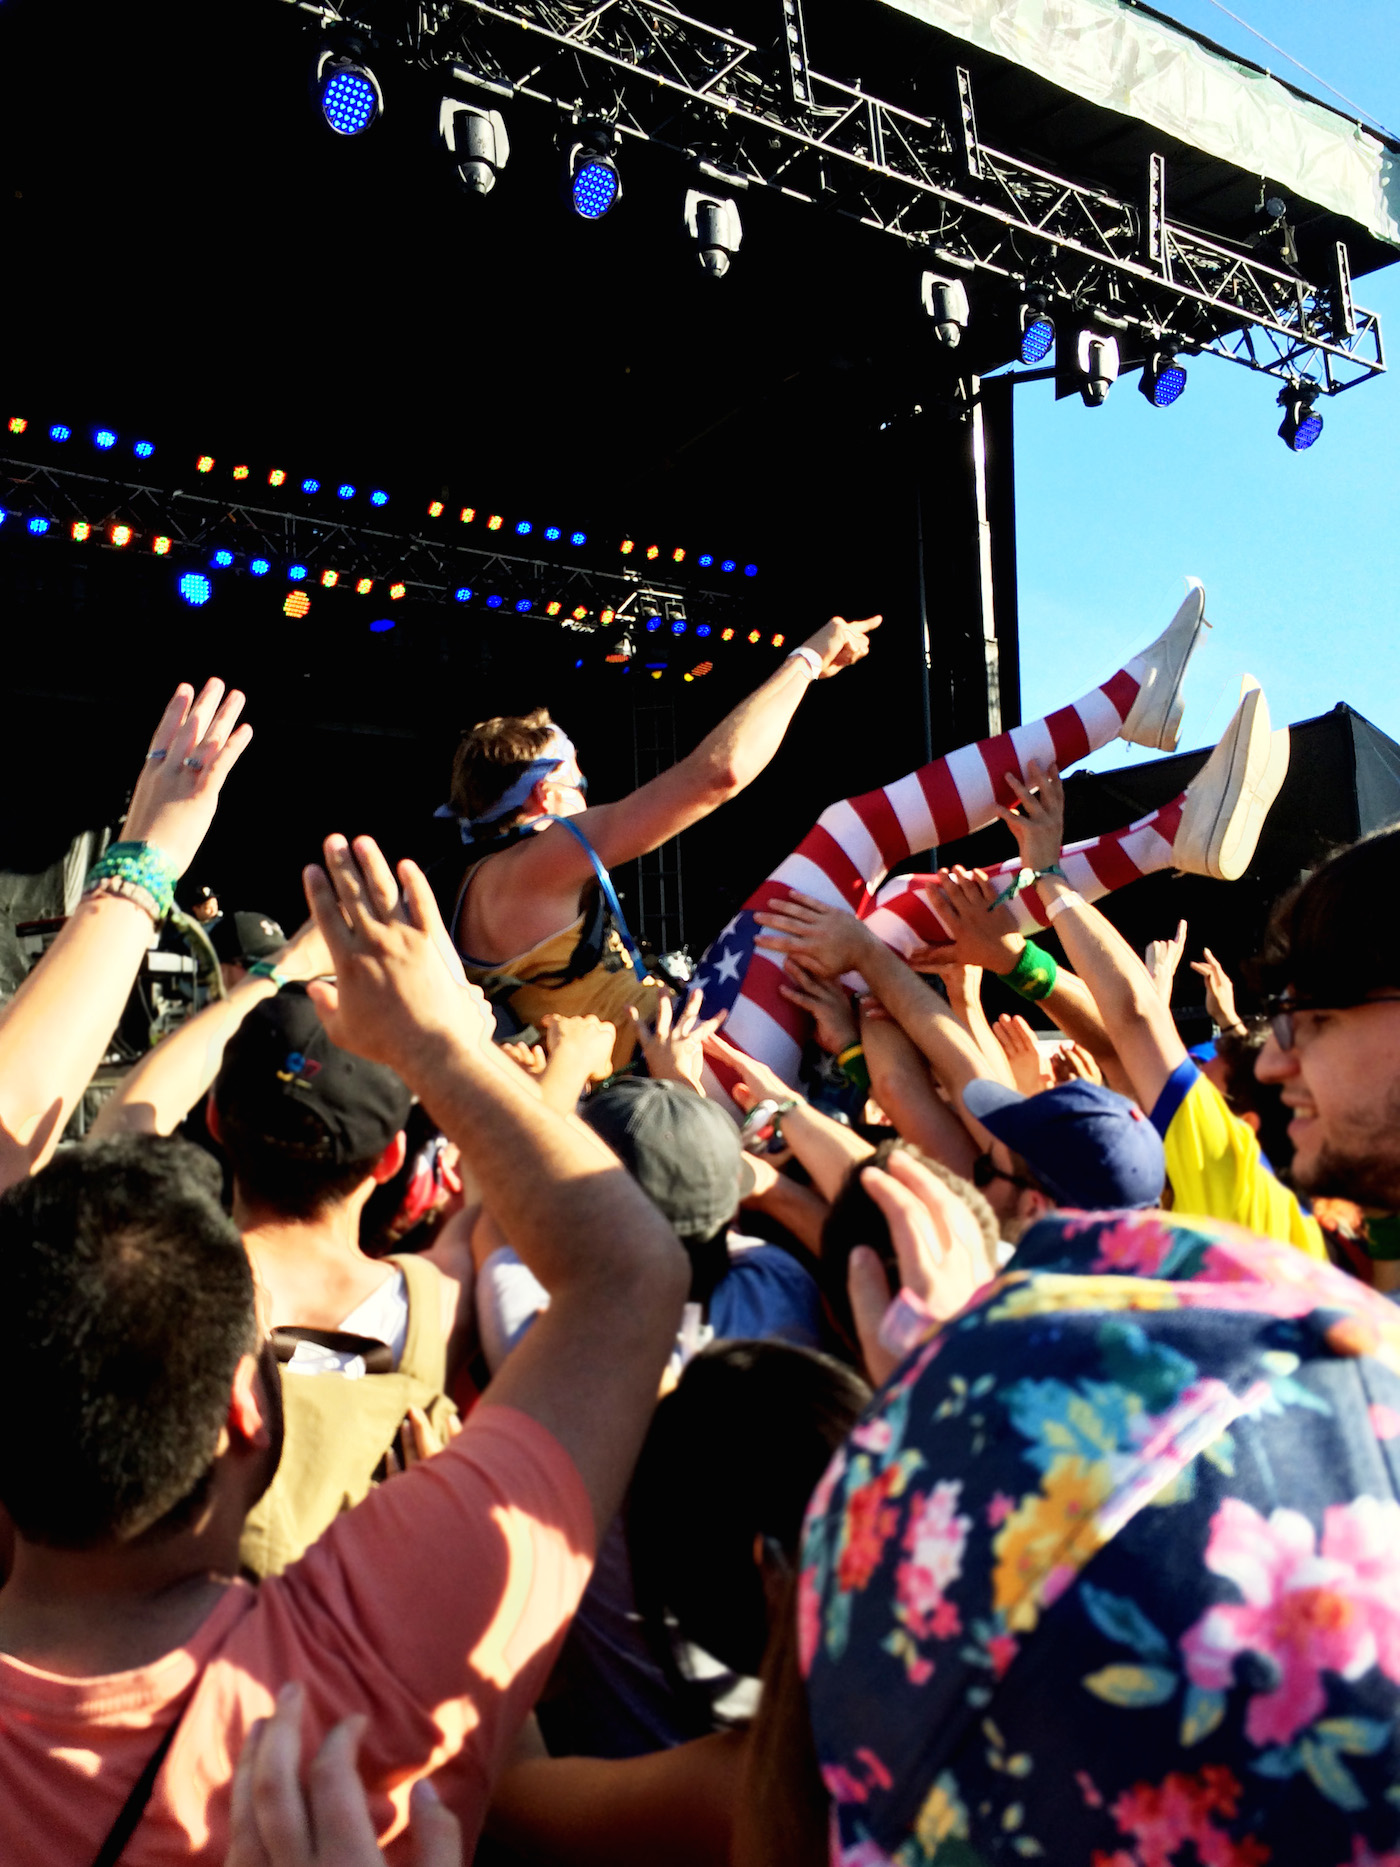 Get your crowd surf on.